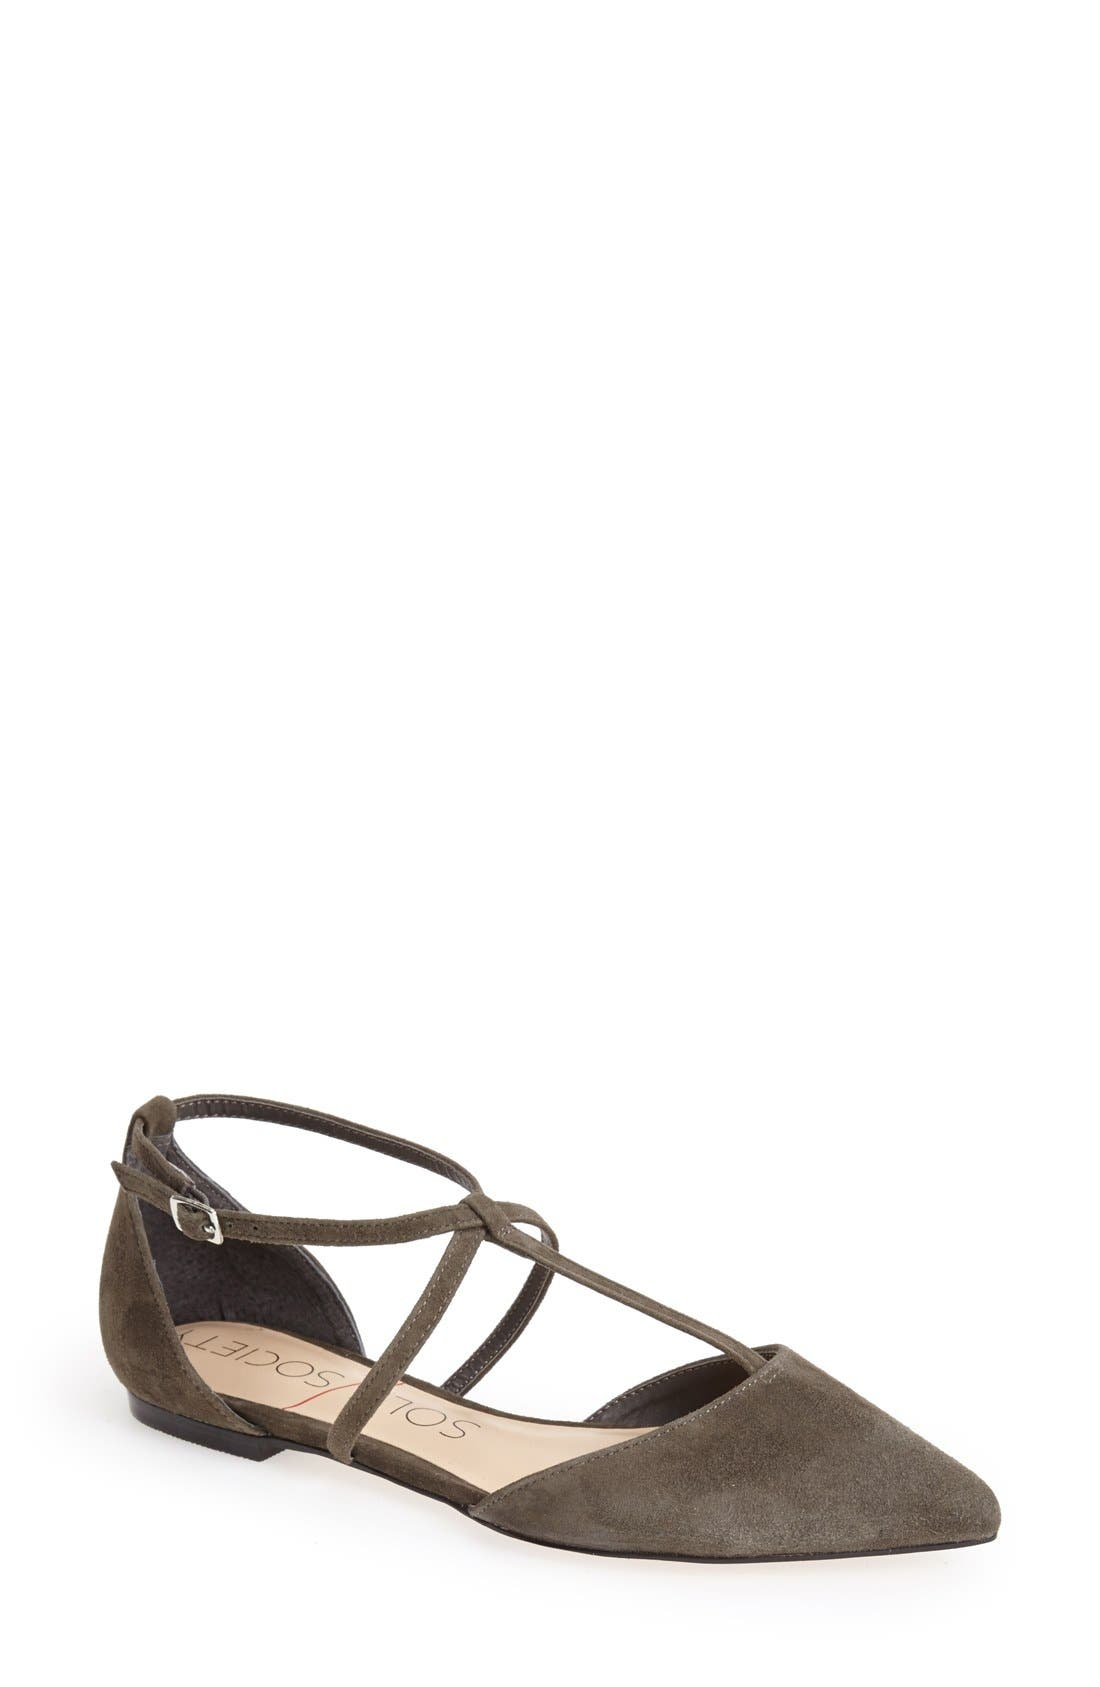 Alternate Image 1 Selected - Sole Society 'Chandler' Pointy Toe Flat (Women)